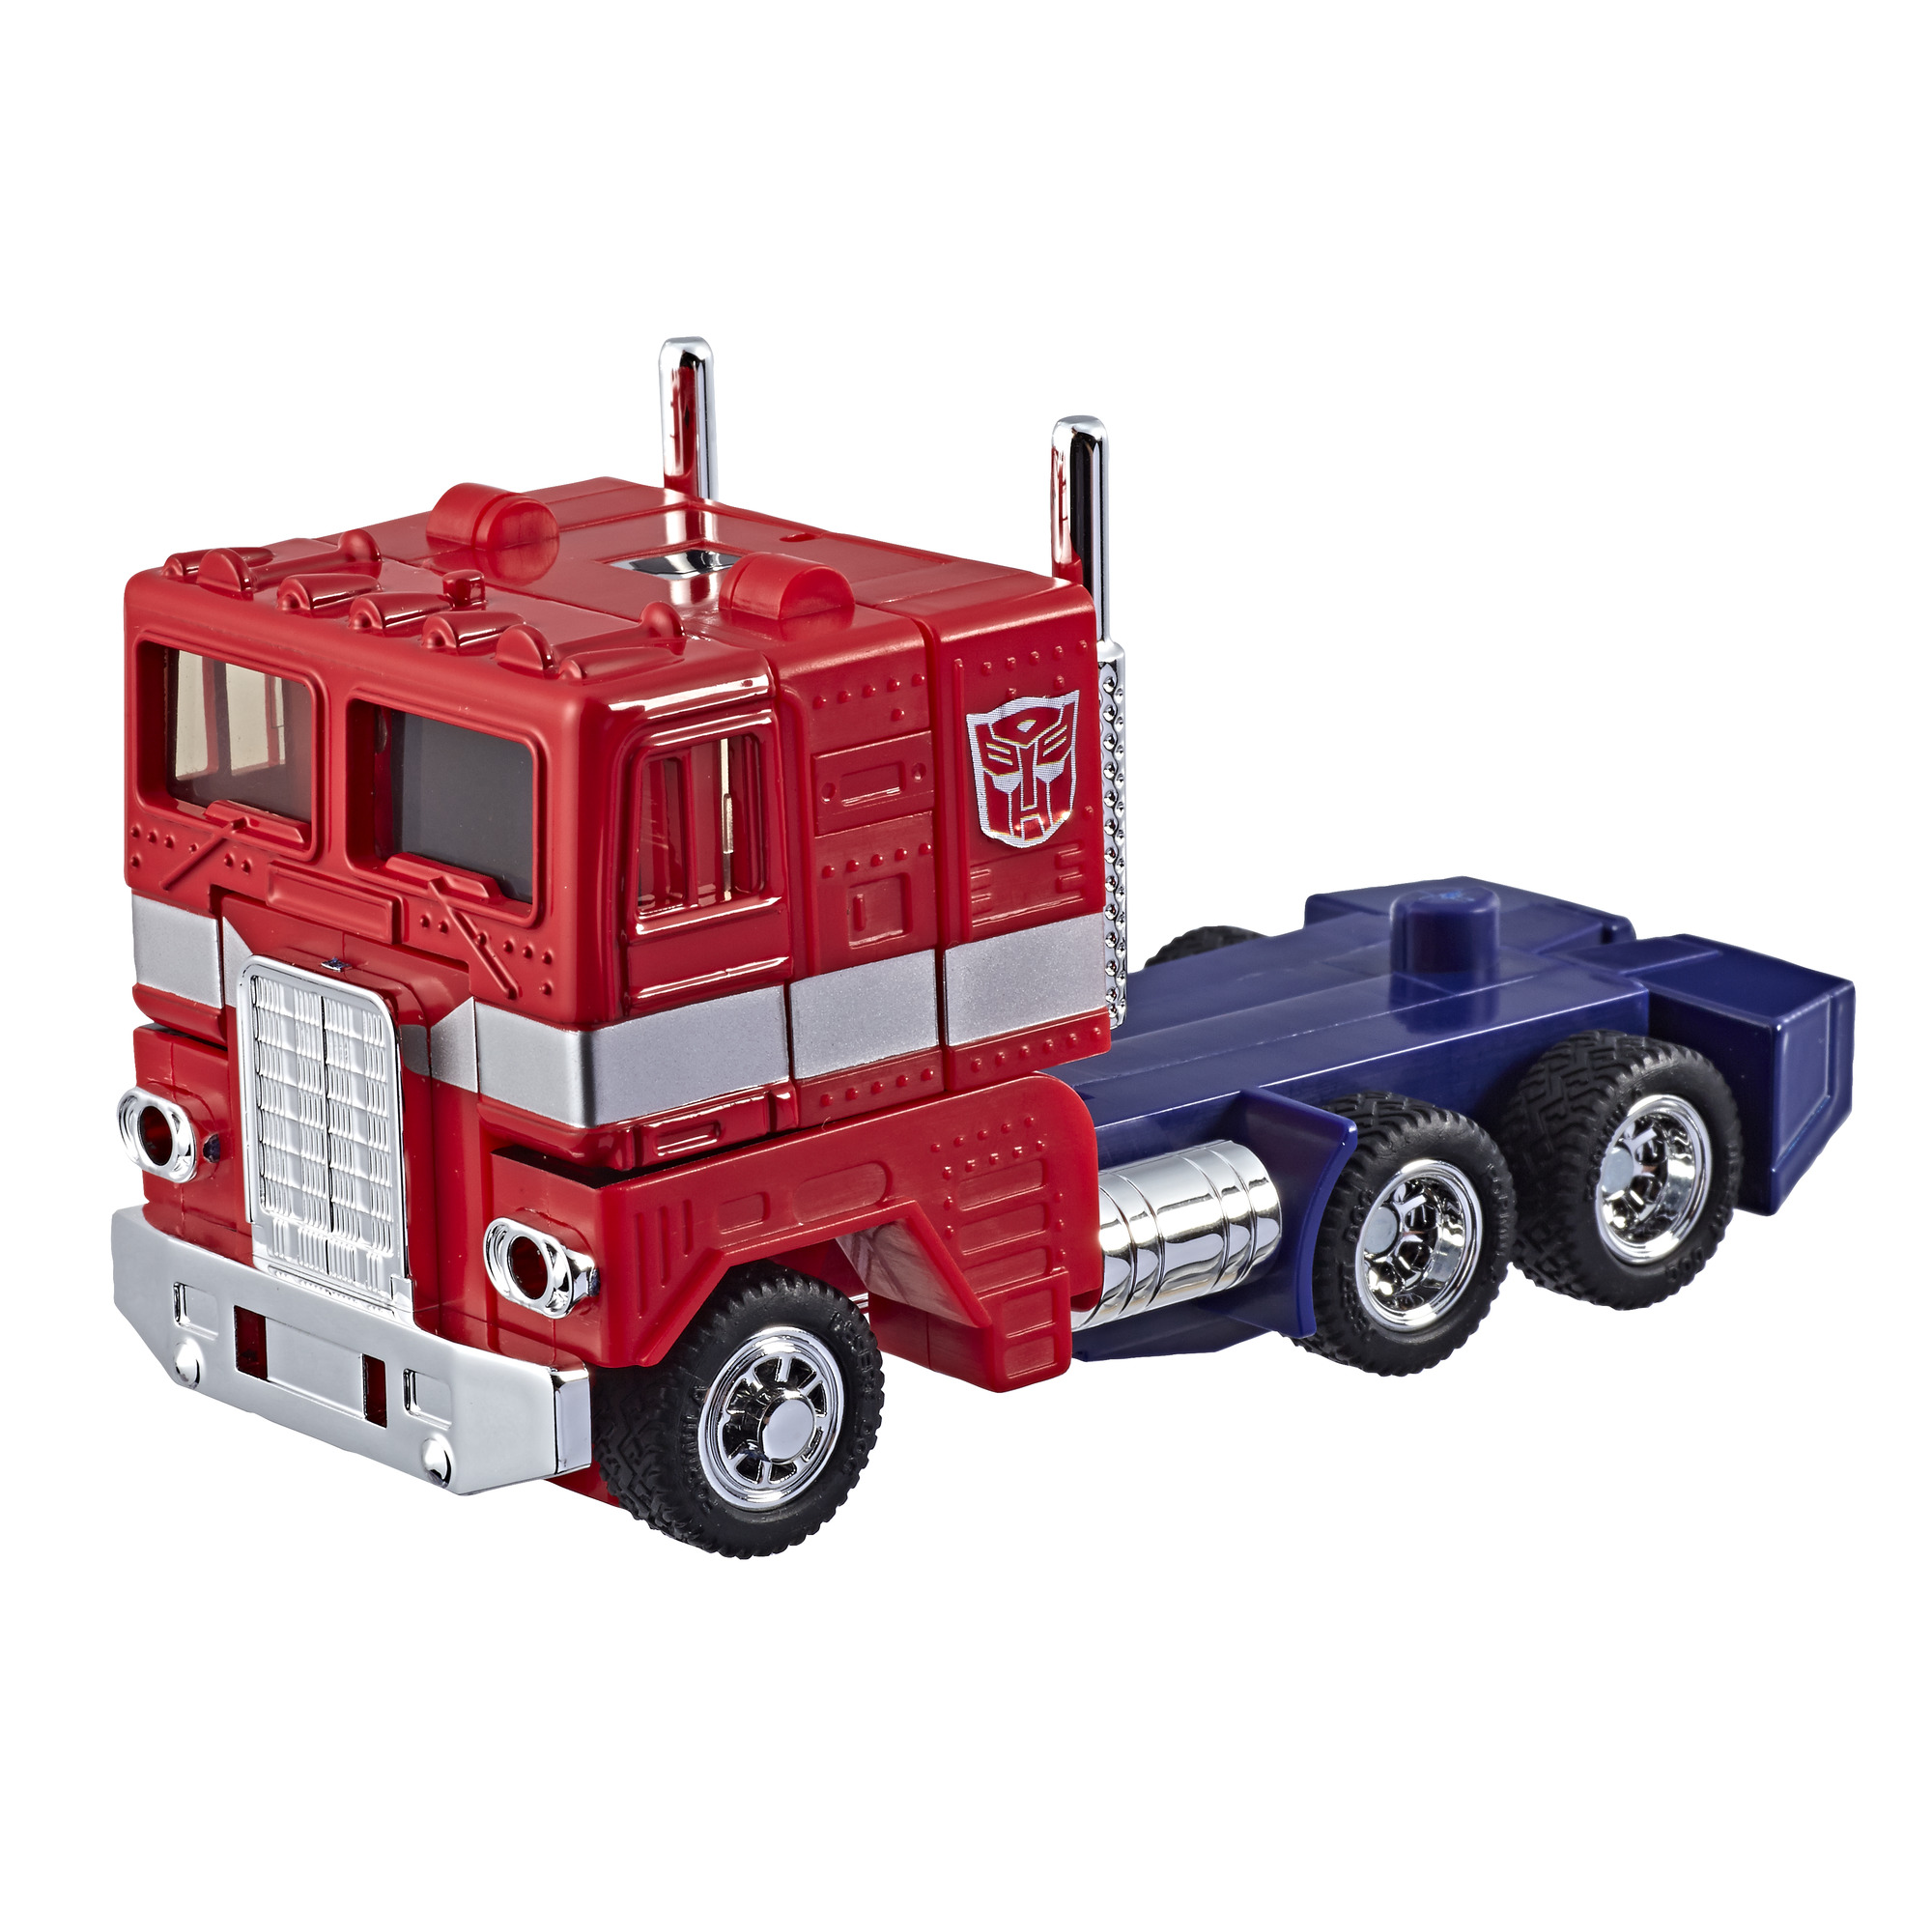 Transformers: Vintage G1 Optimus Prime Collectible Figure